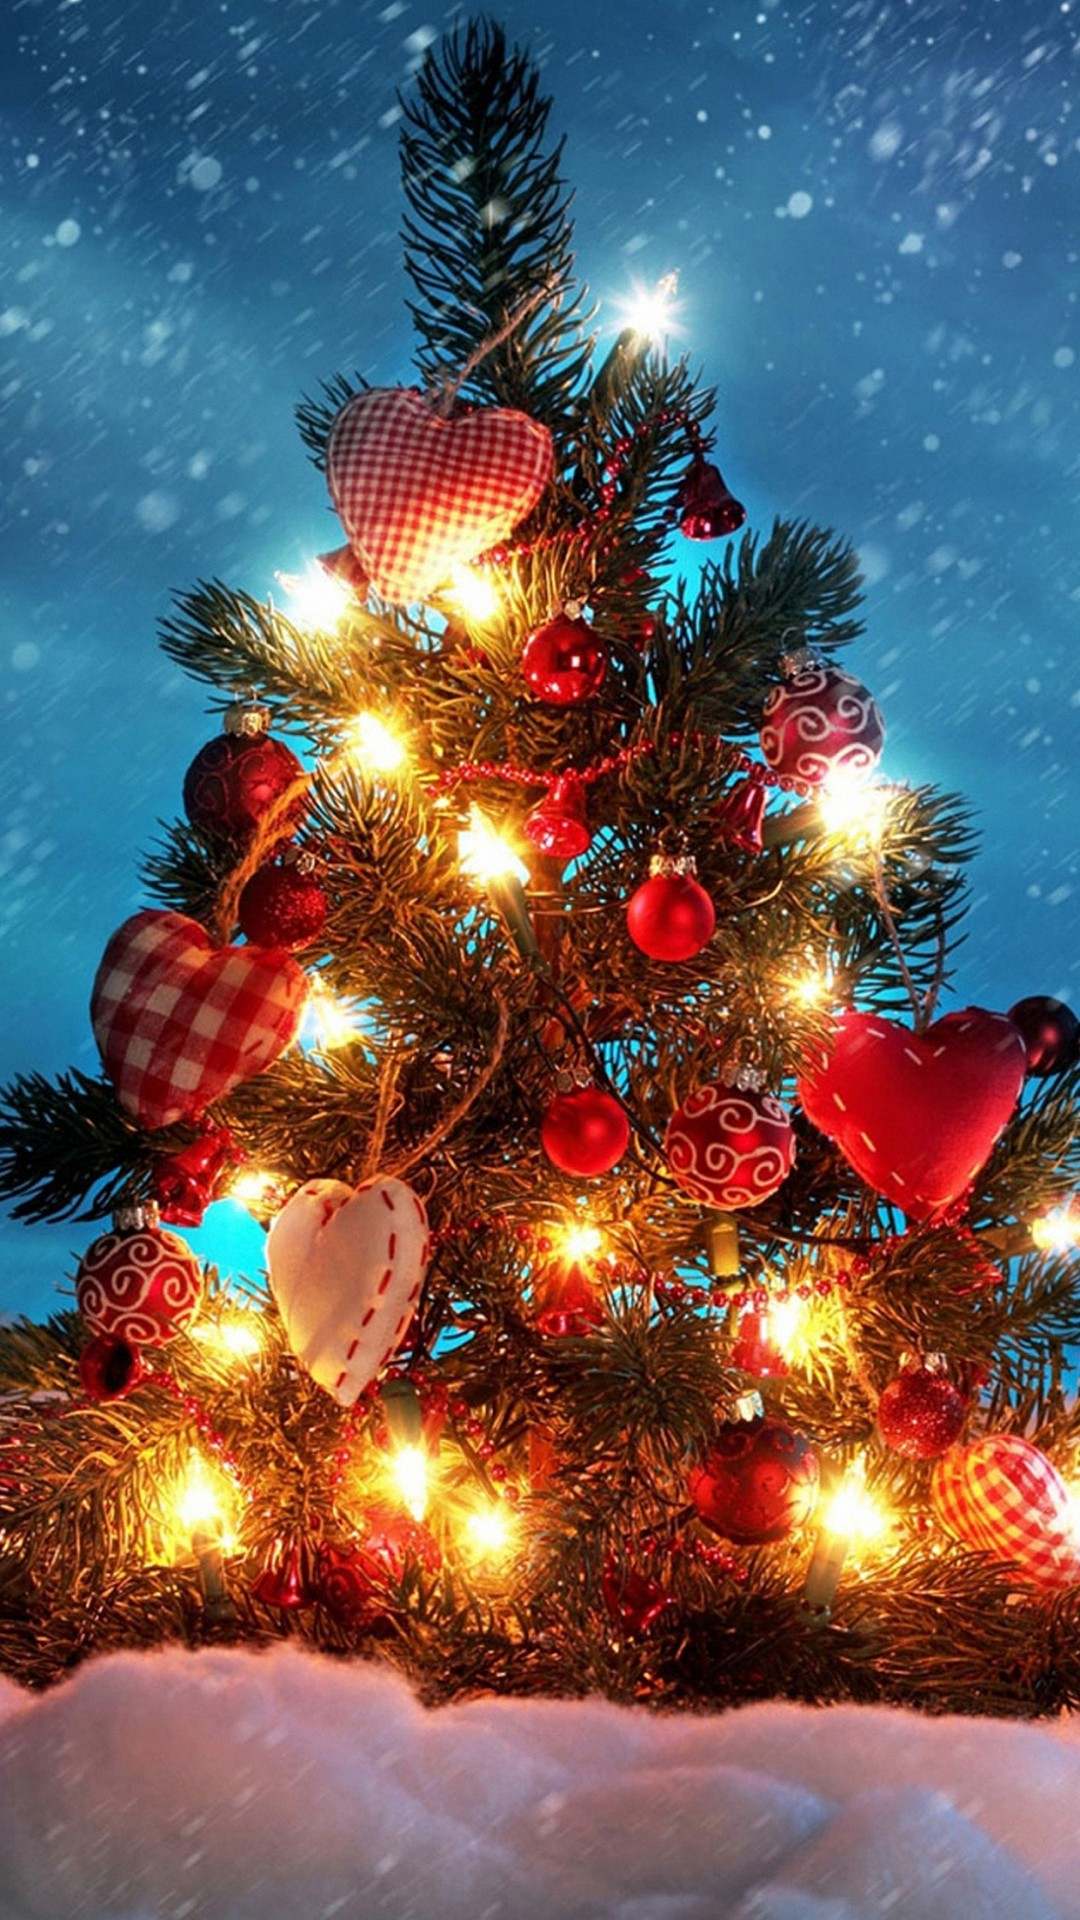 christmas tree heart love decorations iphone 6 wallpapers HD. Christmas  Wallpaper …